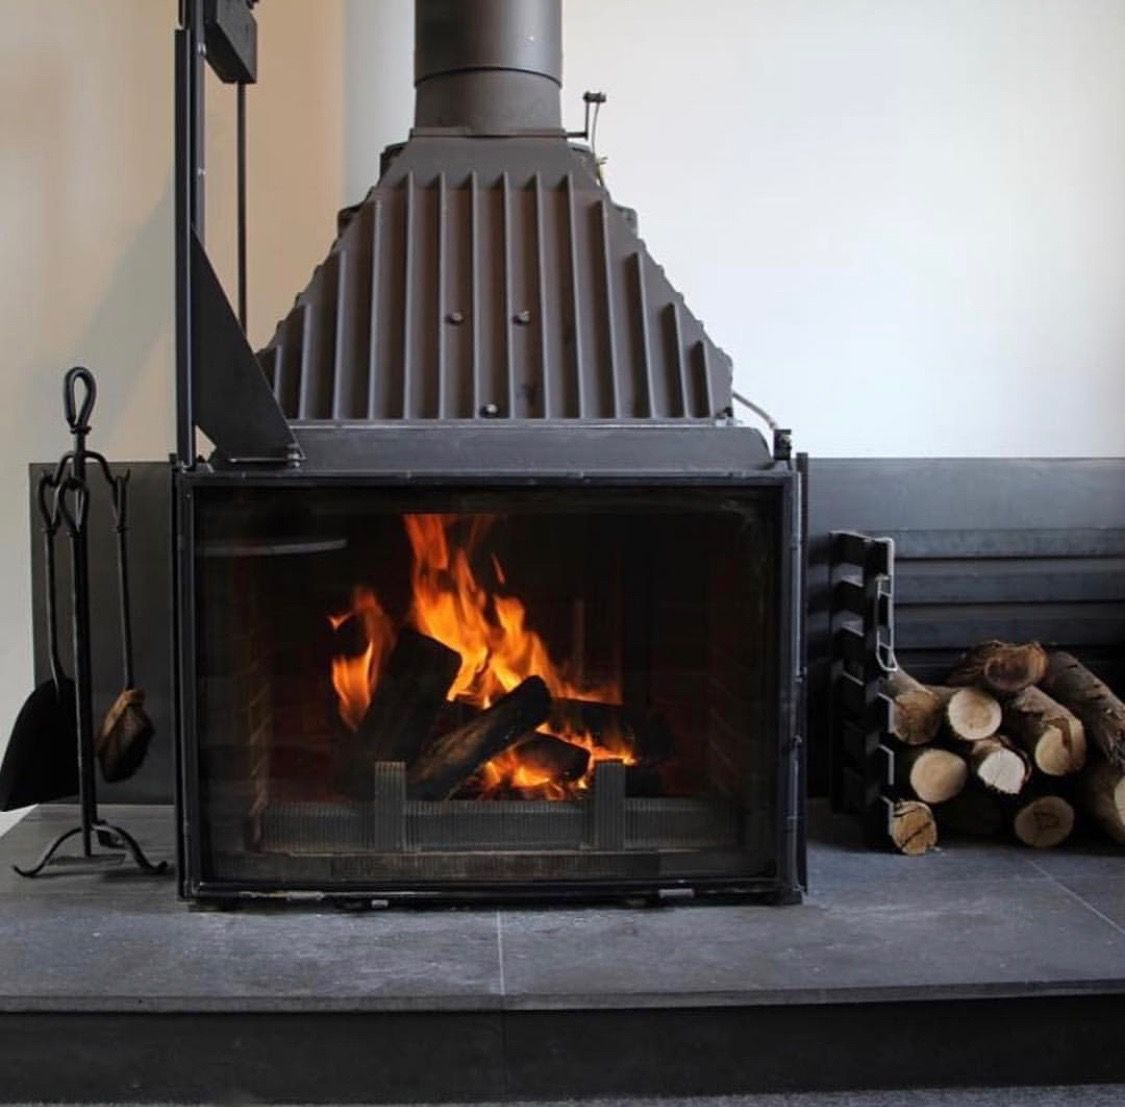 Fireplace Damper Open or Closed Luxury Cast Iron Heating Machine at Brae Restaurant Victoria